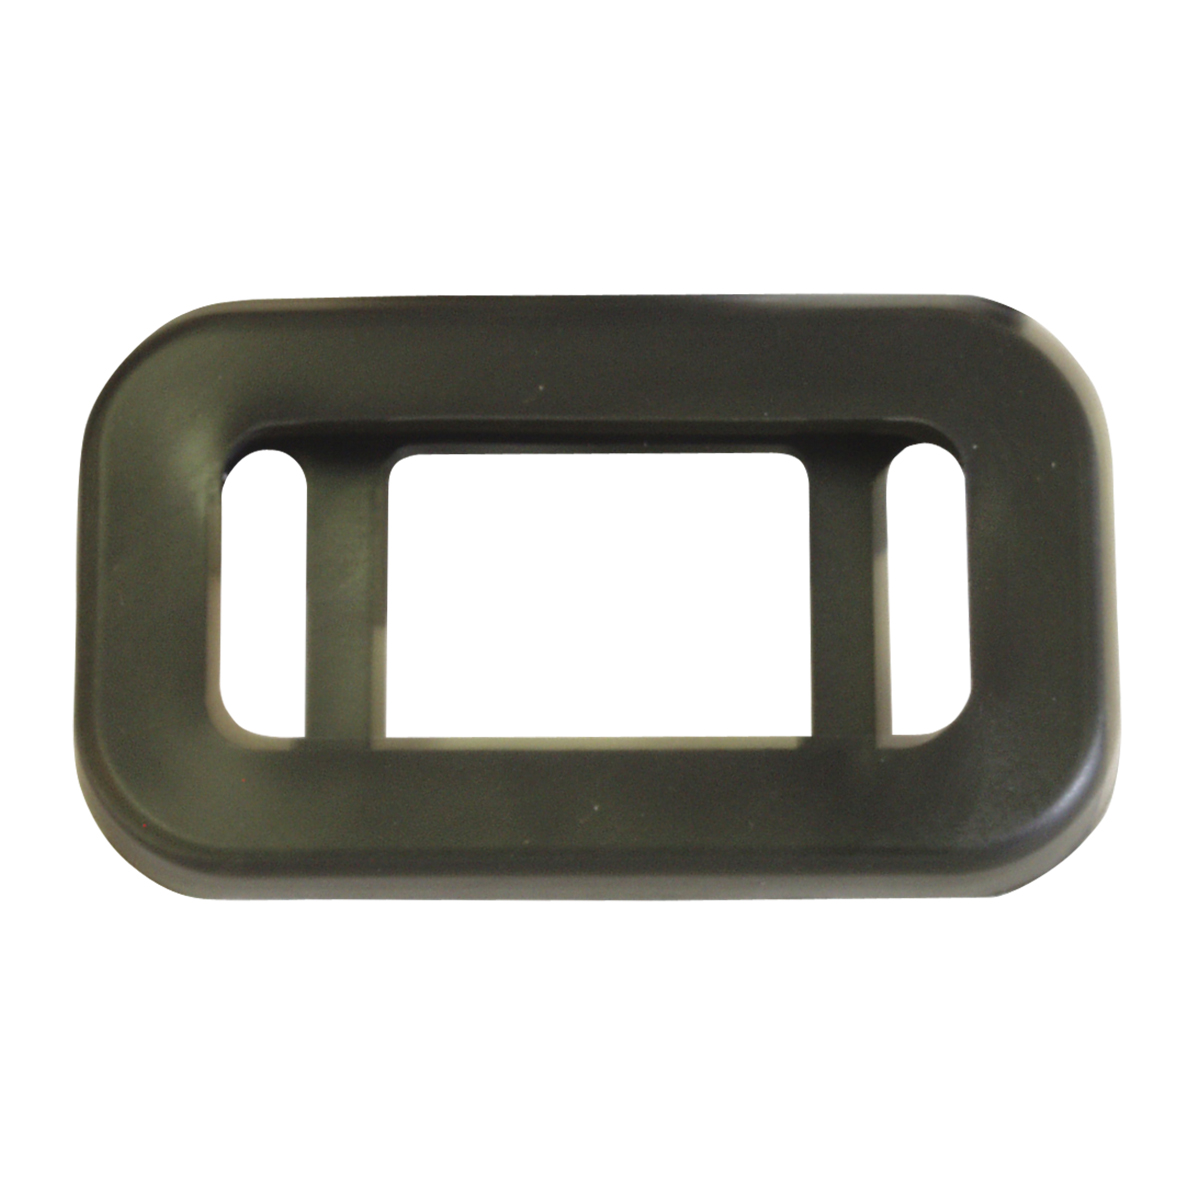 80959 Grommet for Small Rectangular Light in 2 Bar Style